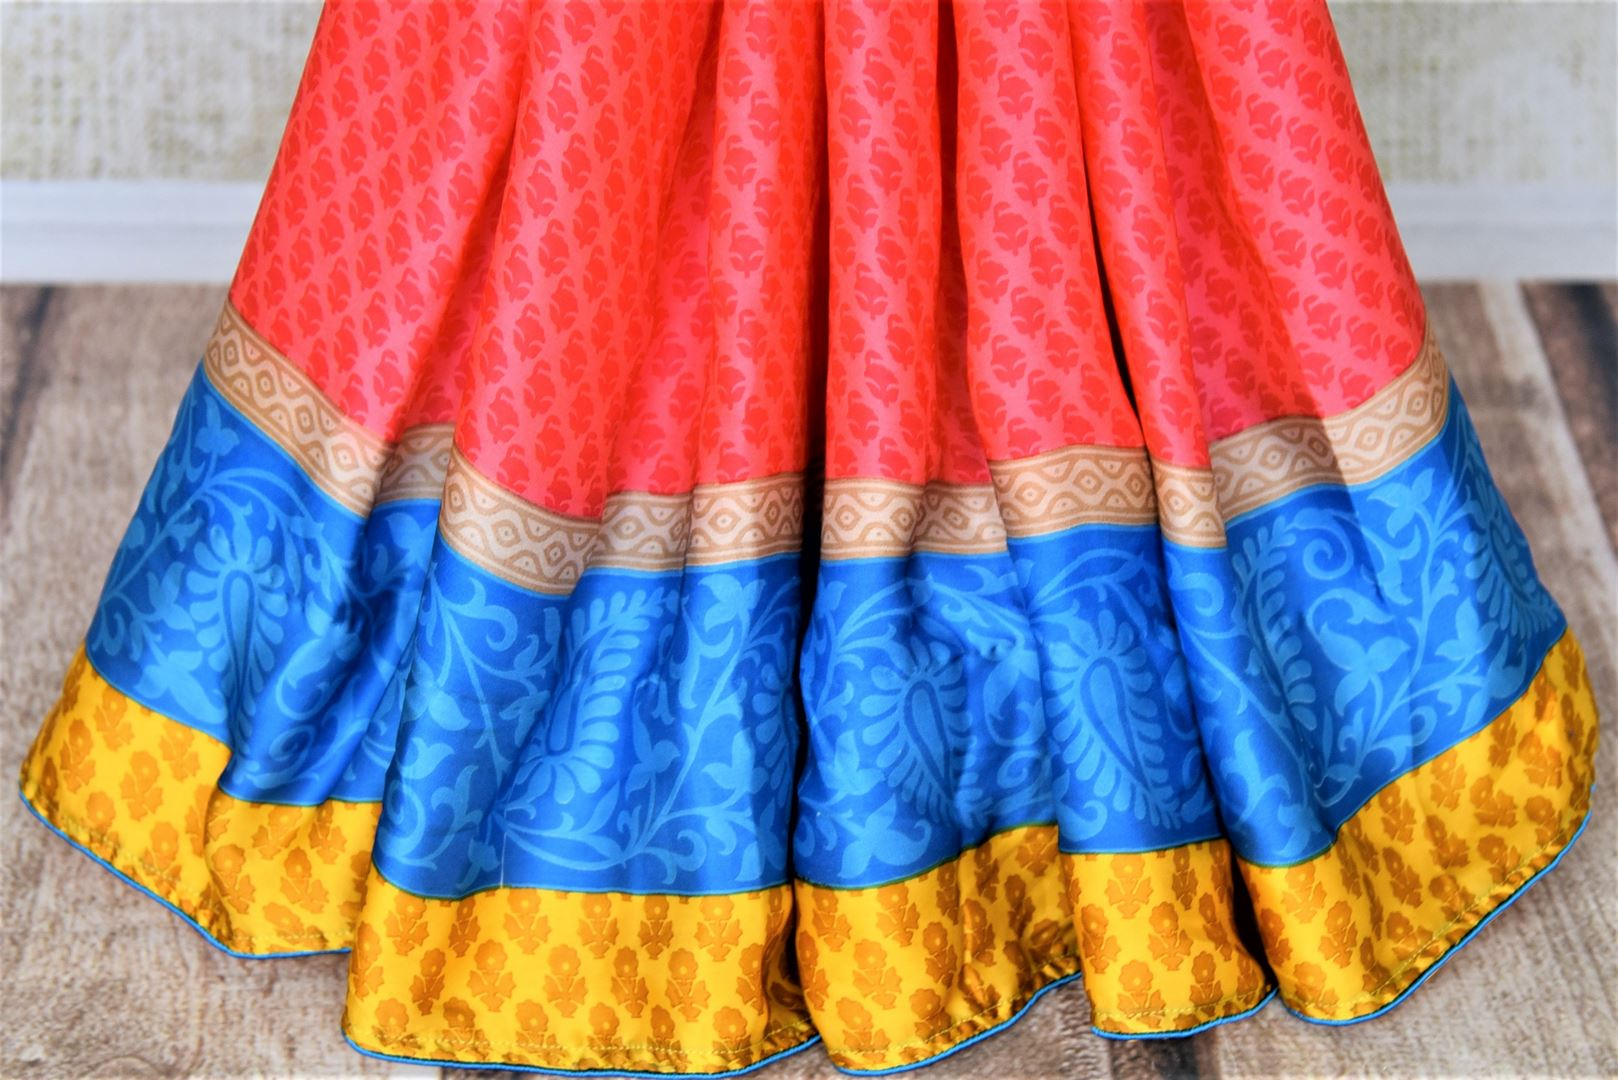 Buy salmon pink prined crepe saree online in USA with blue and yellow border. Elevate your ethnic style on weddings and festive occasions with stunning designer sarees, pure silk sarees, crepe sarees, printed sarees from Pure Elegance Indian fashion boutique in USA.-pleats